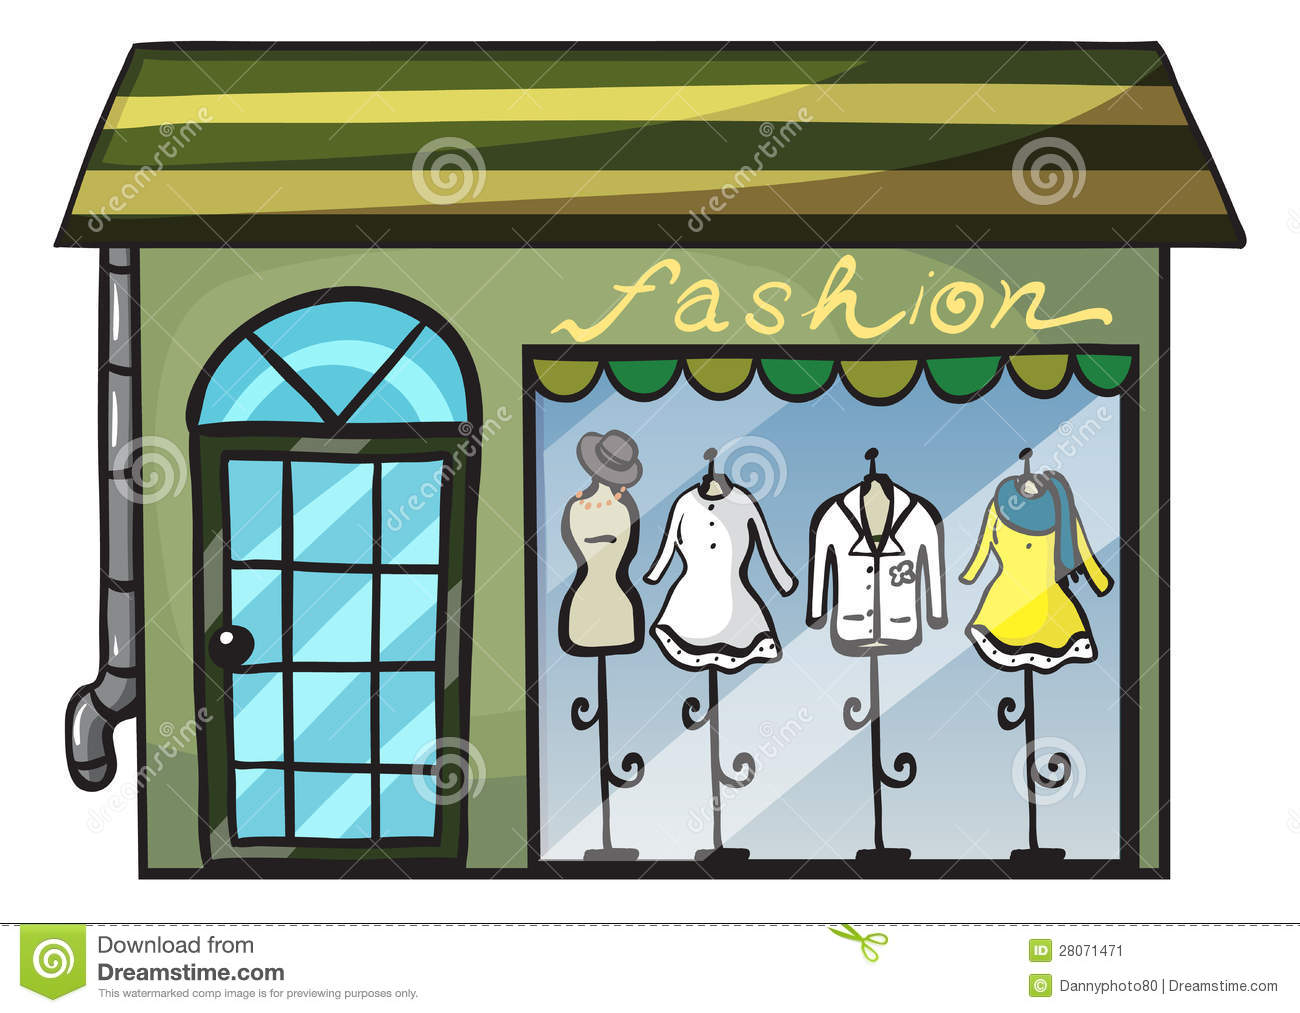 Illustration of a clothing store on a white background.